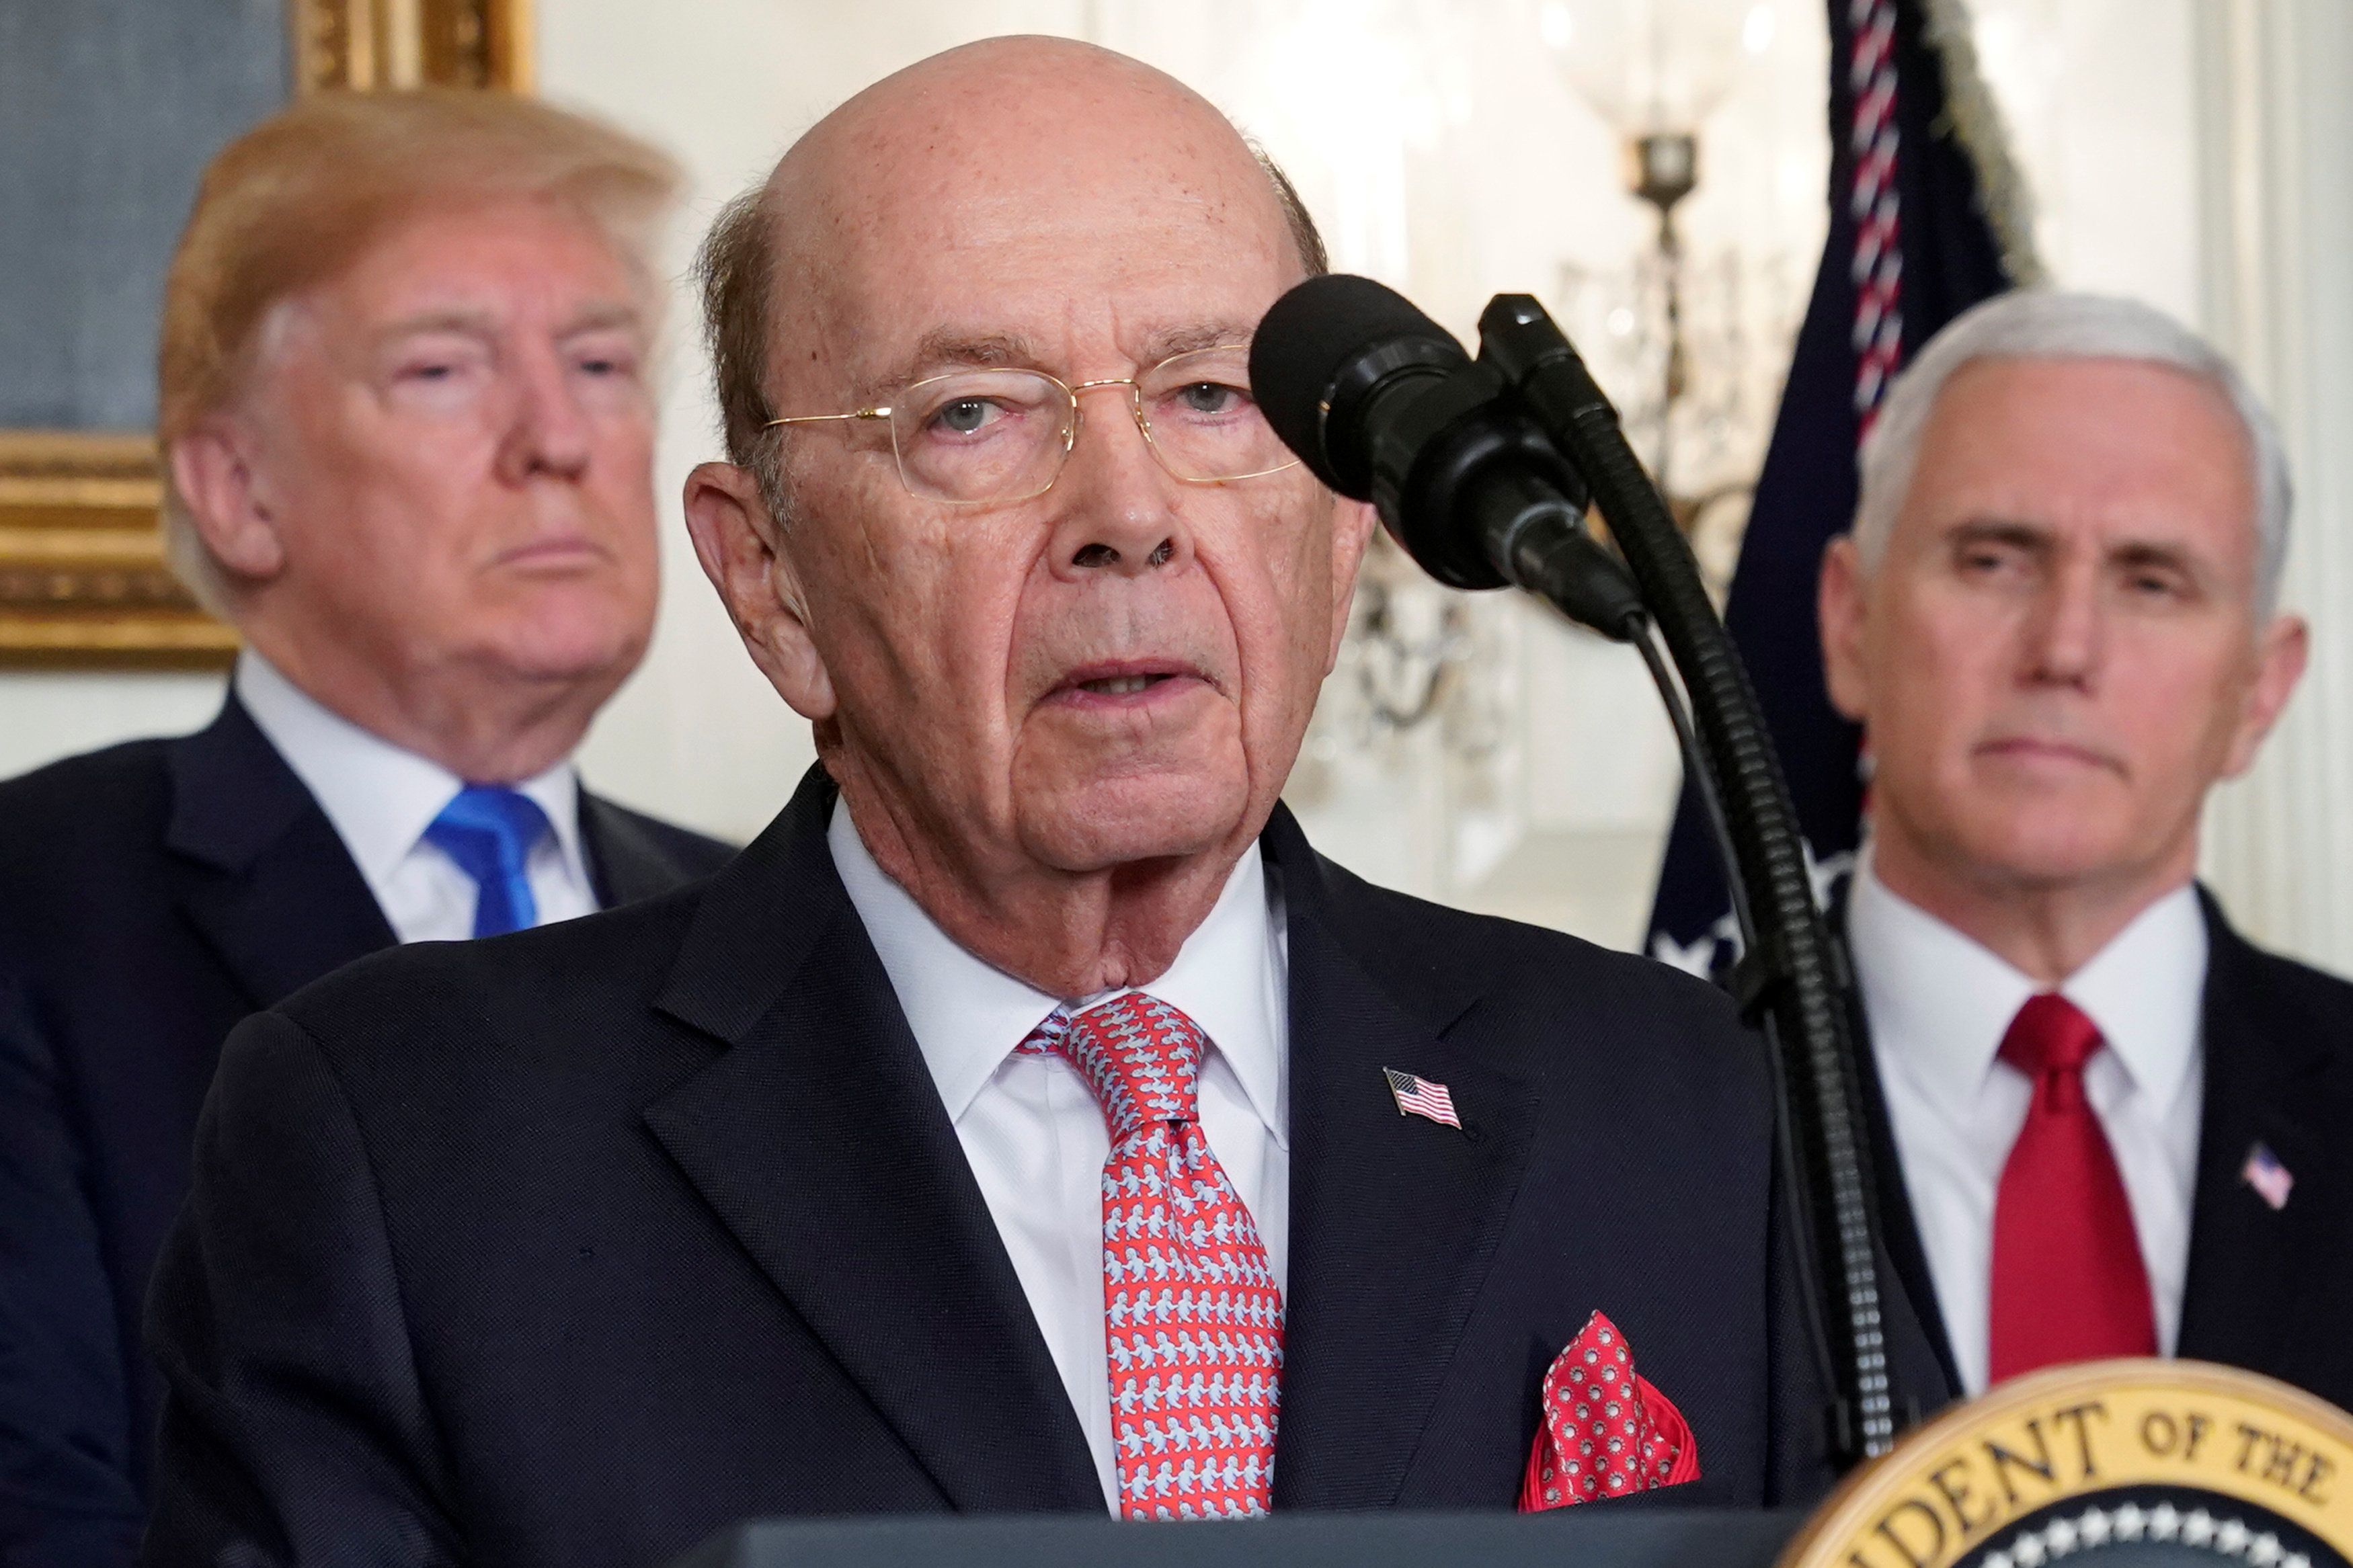 U.S. President Donald Trump, flanked by ?Vice President Mike Pence?, listens to remarks by Commerce Secretary Wilbur Ross before signing a memorandum on intellectual property tariffs on high-tech goods from China, at the White House in Washington, U.S. March 22, 2018.  REUTERS/Jonathan Ernst